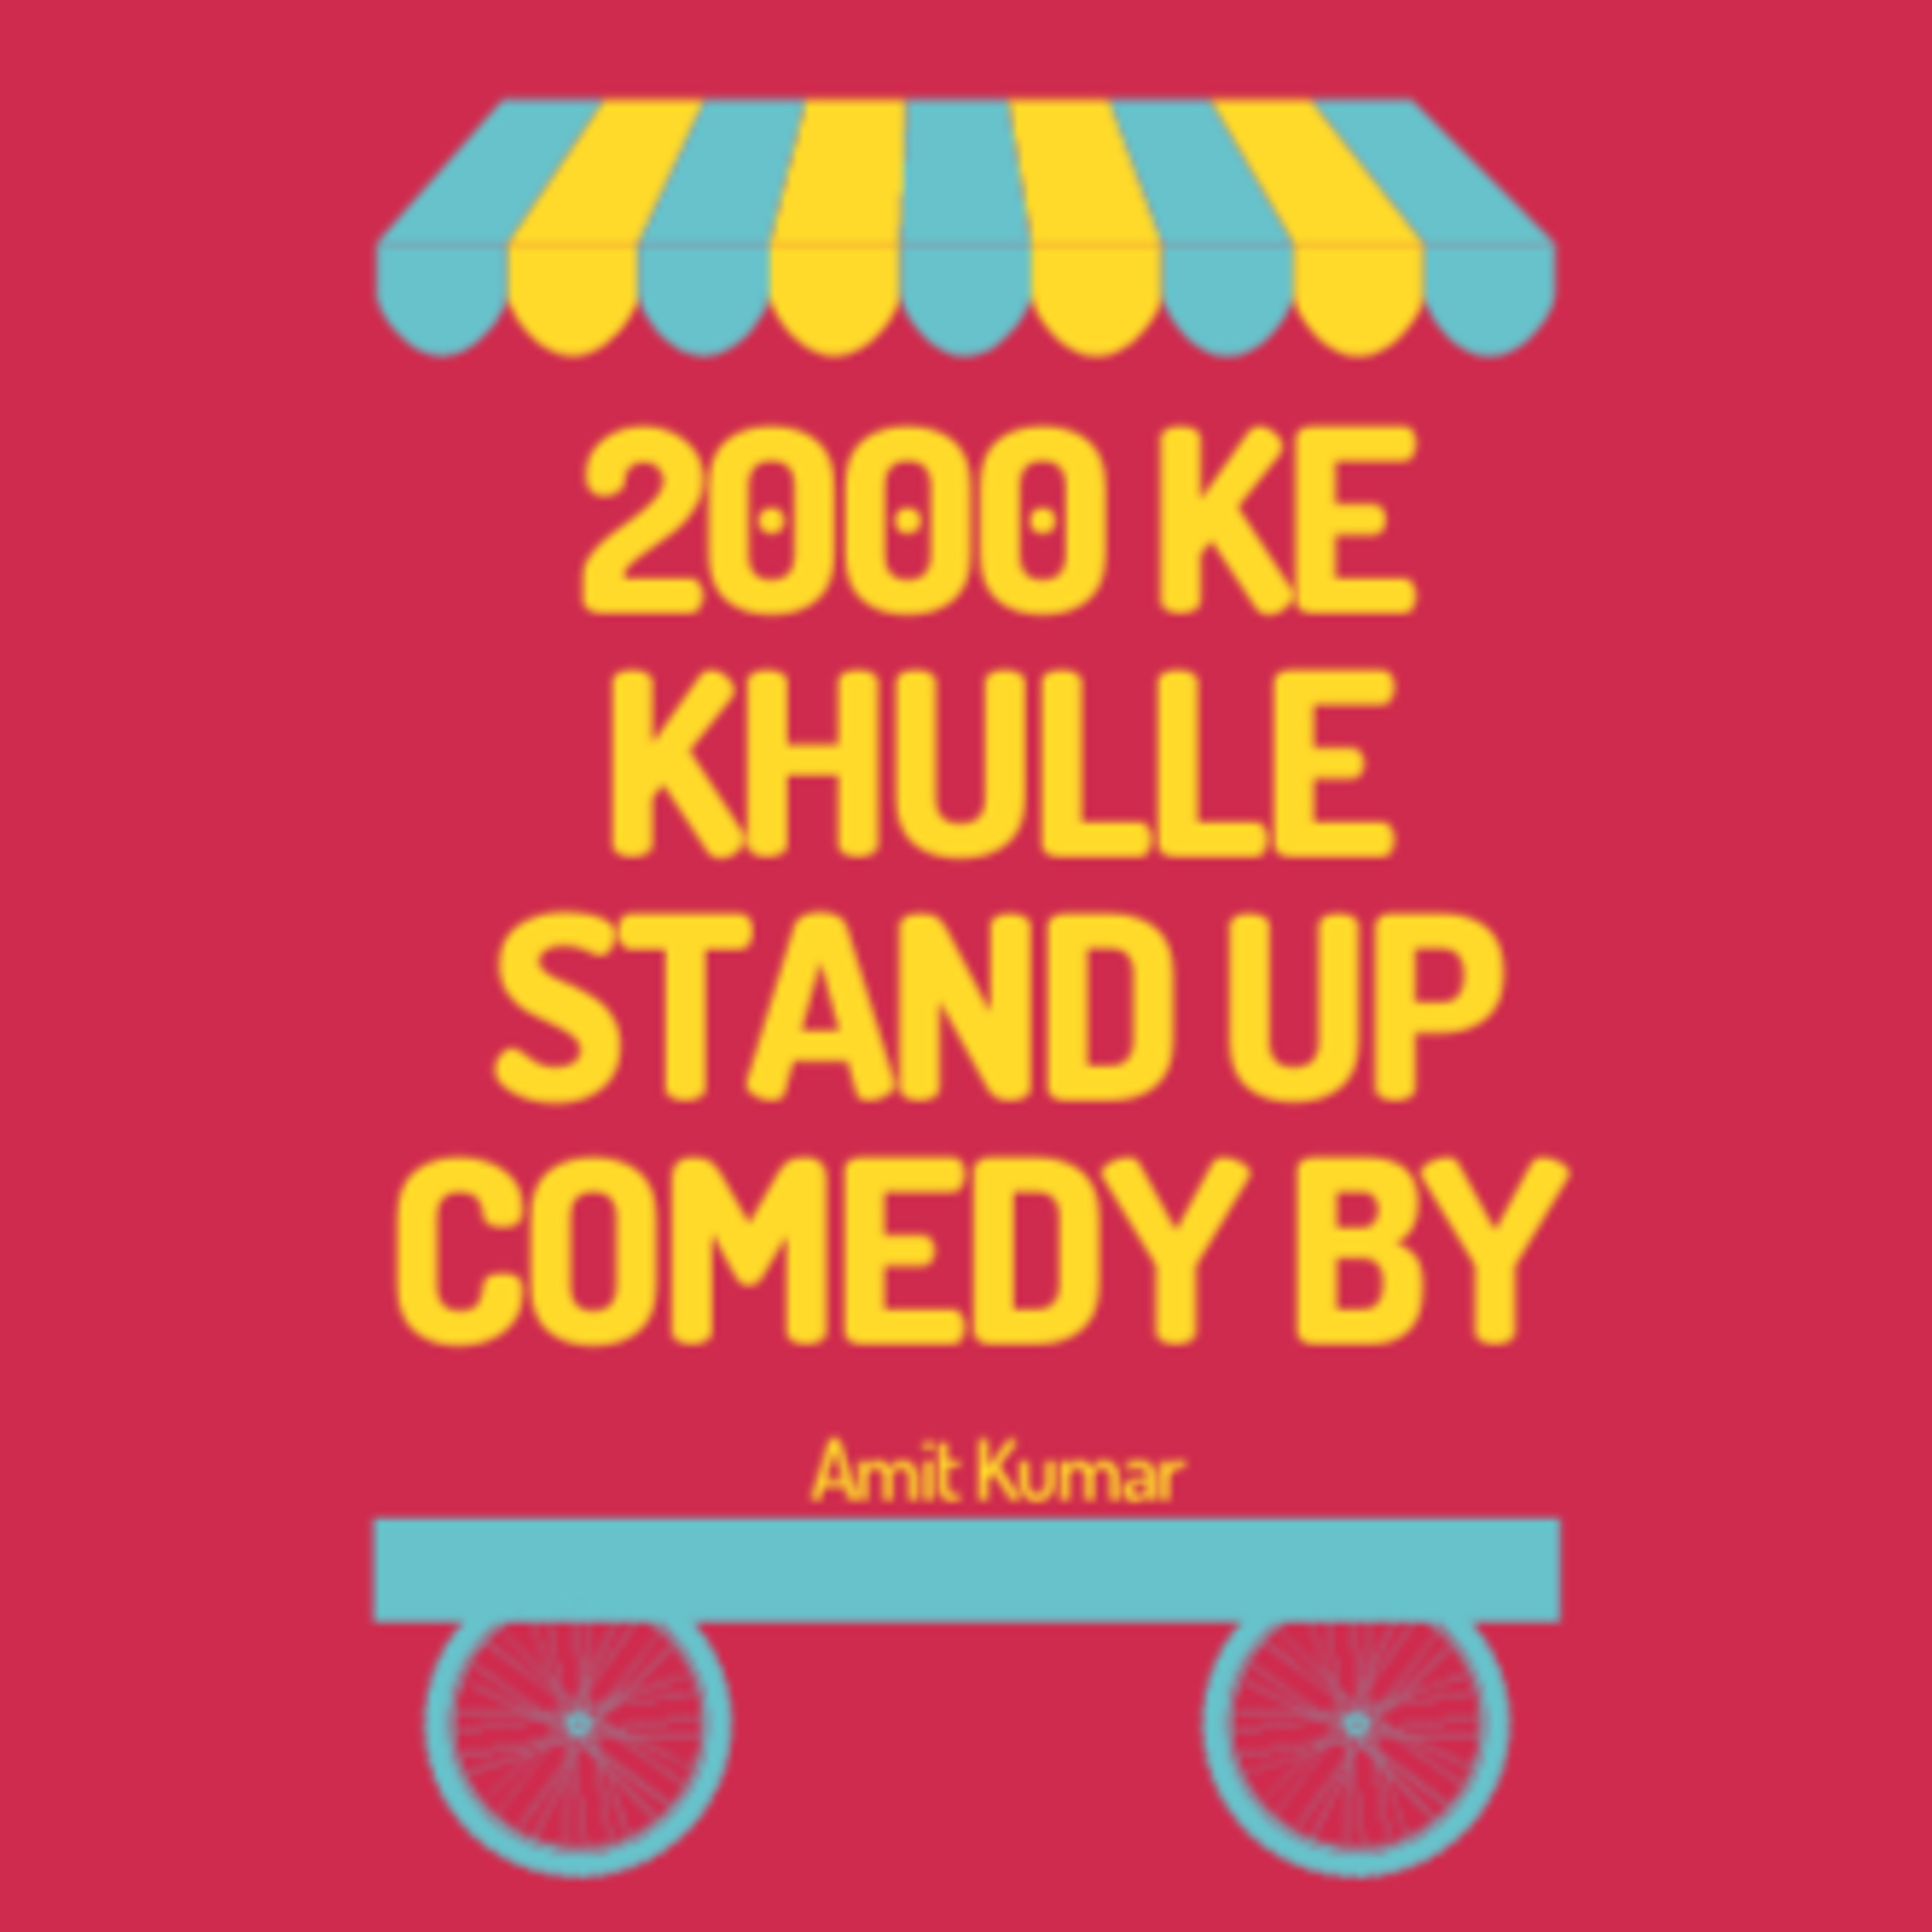 2000 ke Khulle - Stand Up Comedy